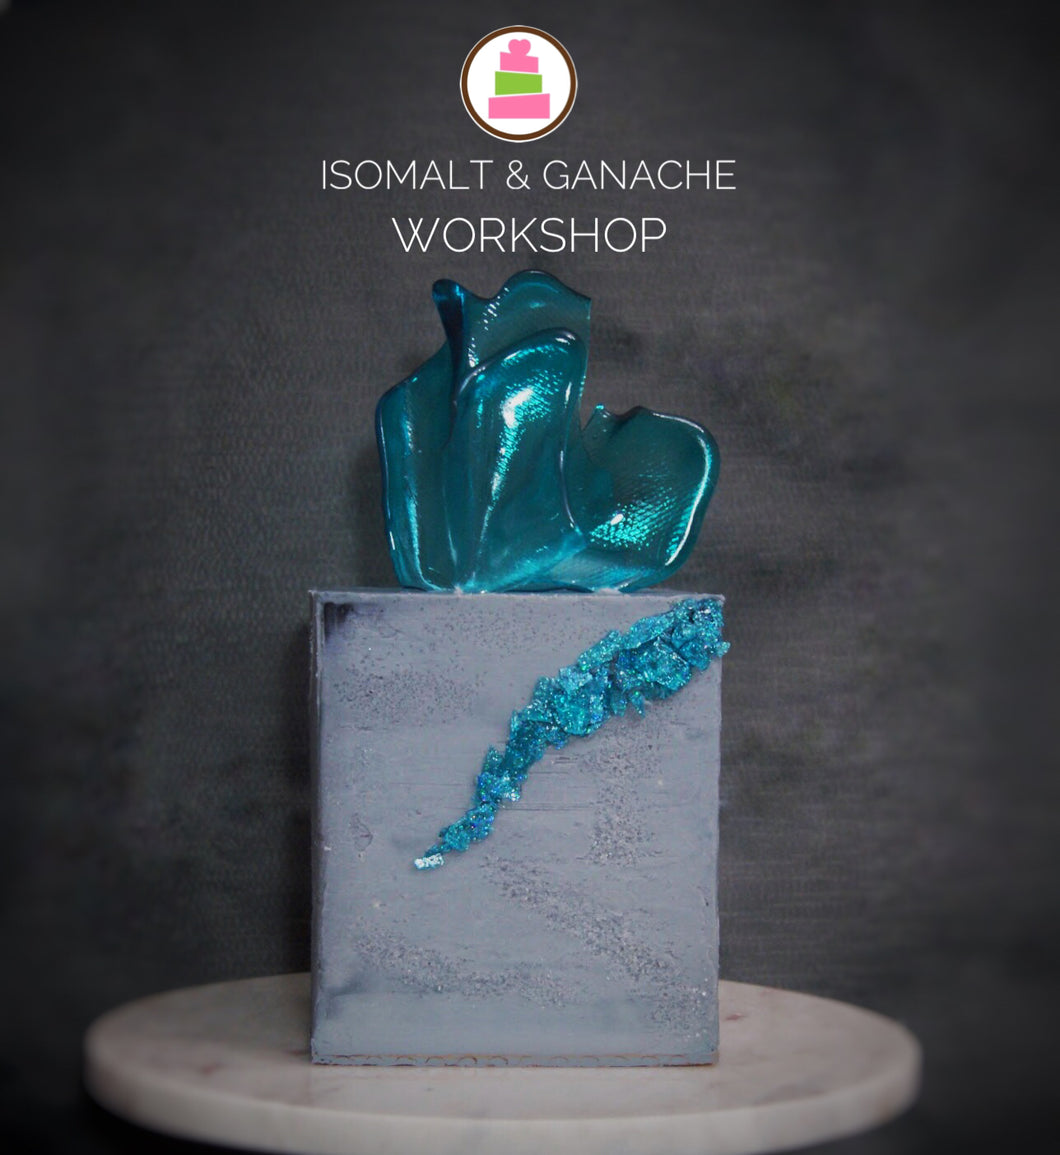 Isomalt and ganache workshop